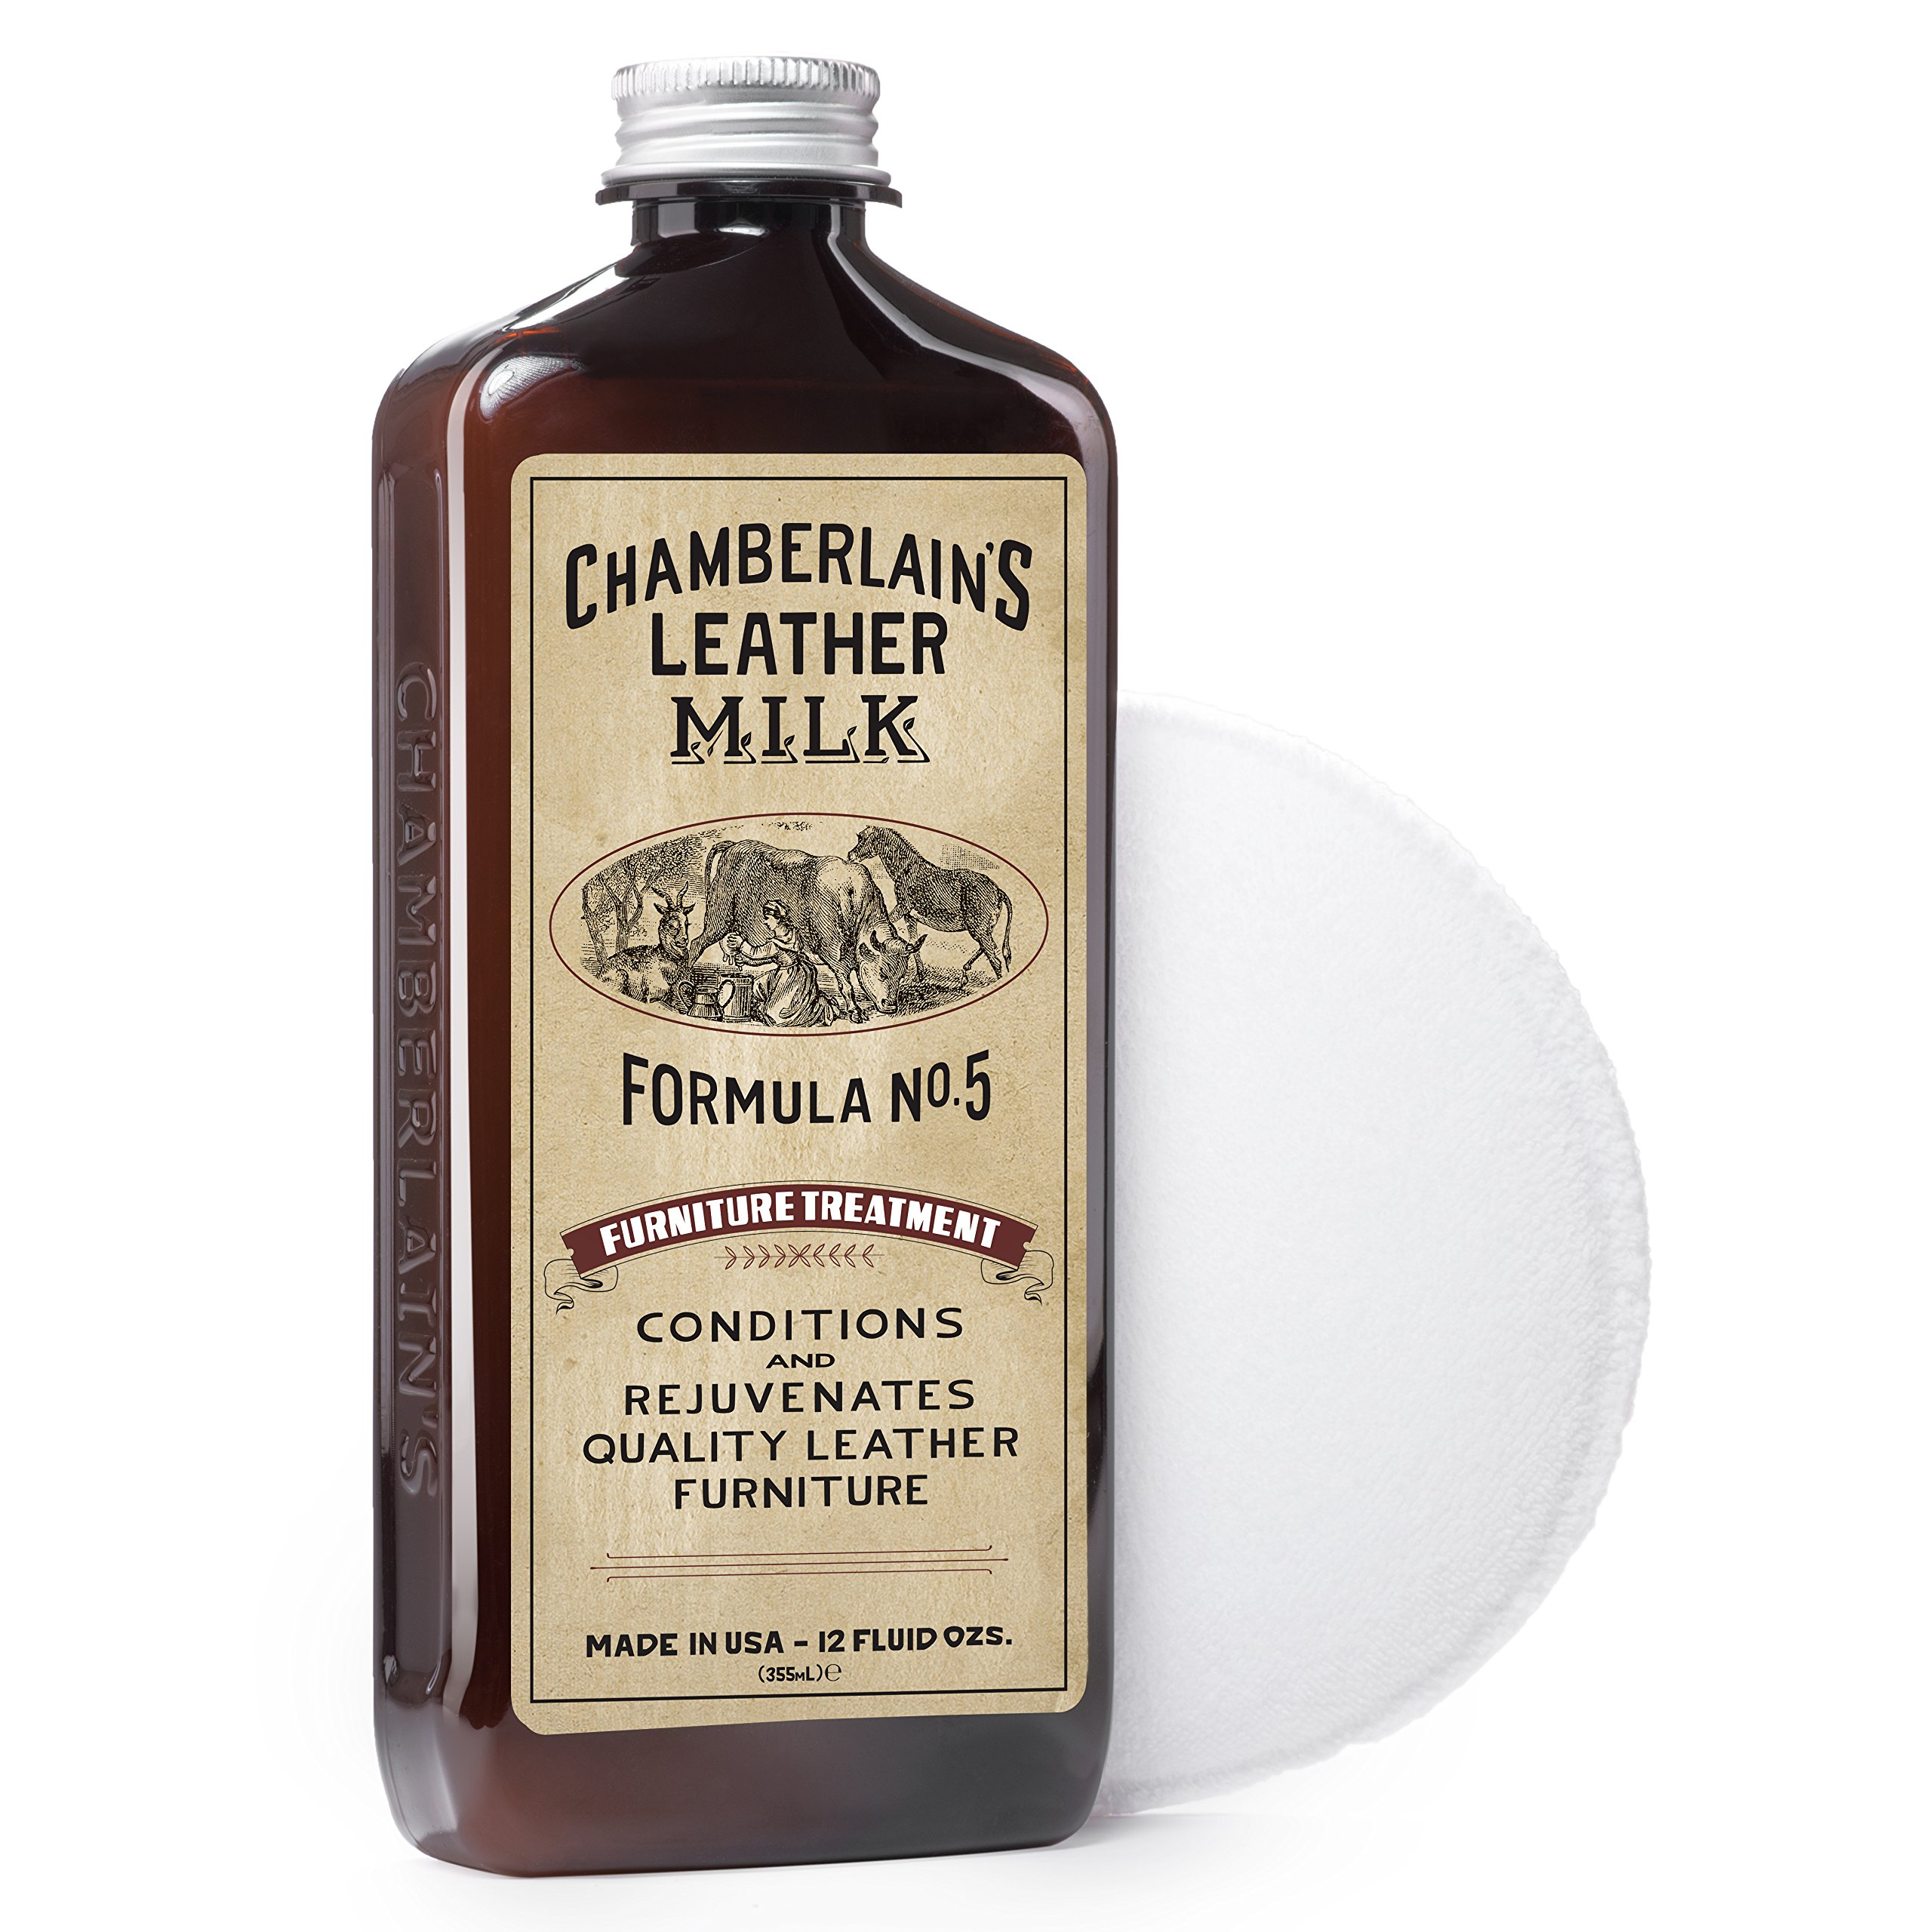 Leather Milk Leather Furniture Cleaner & Conditioner Kit (2 Bottle Furniture Care Set) - Straight Cleaner No. 2 + Furniture Treatment No. 5 - All Natural, Non-Toxic. Made in USA. W/ 2 Restoration Pads by Chamberlain's Leather Milk (Image #1)